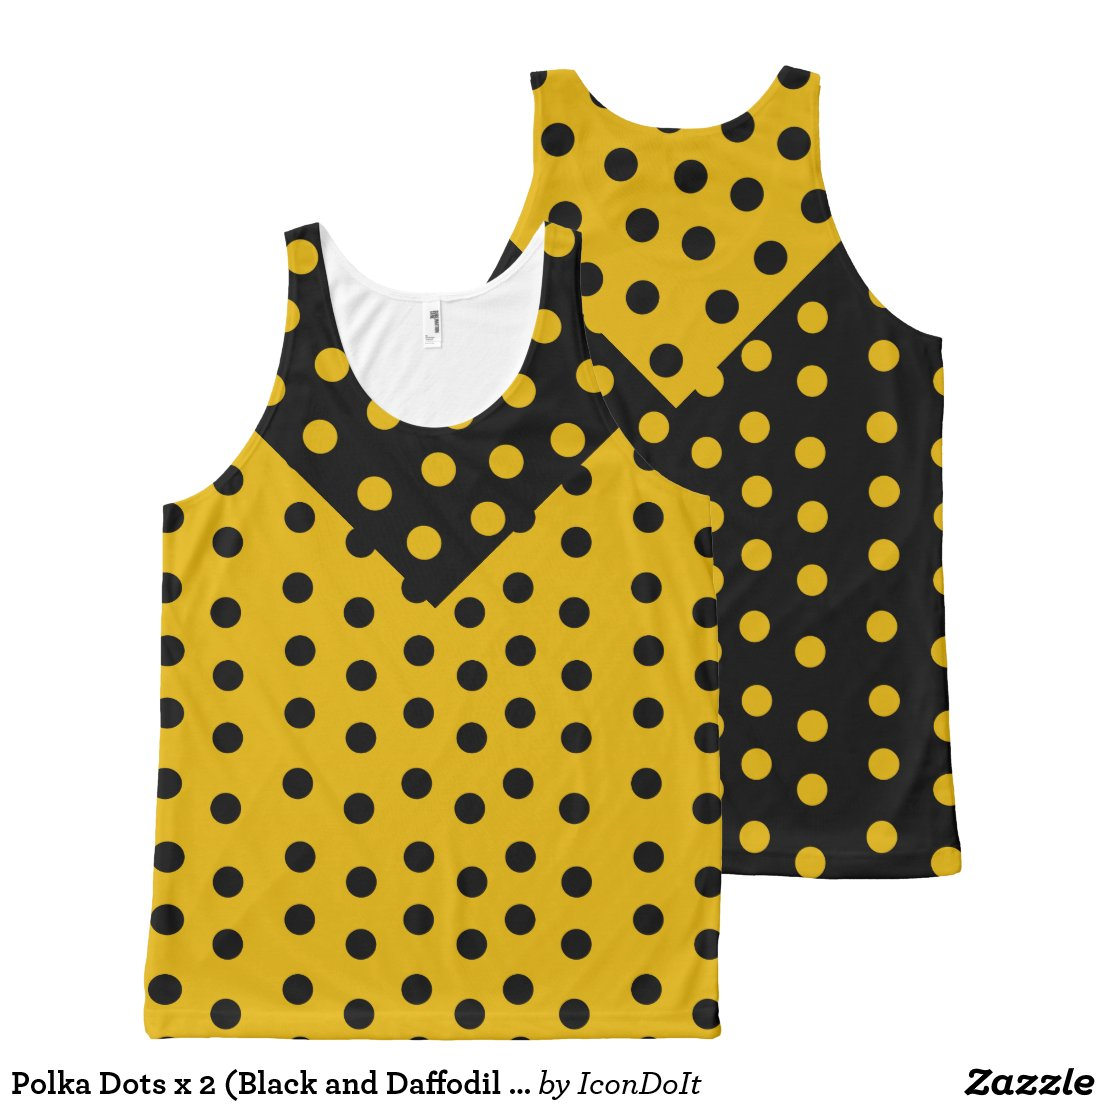 Polka Dots x 2 (Black and Daffodil Yellow) All-Over-Print Tank Top